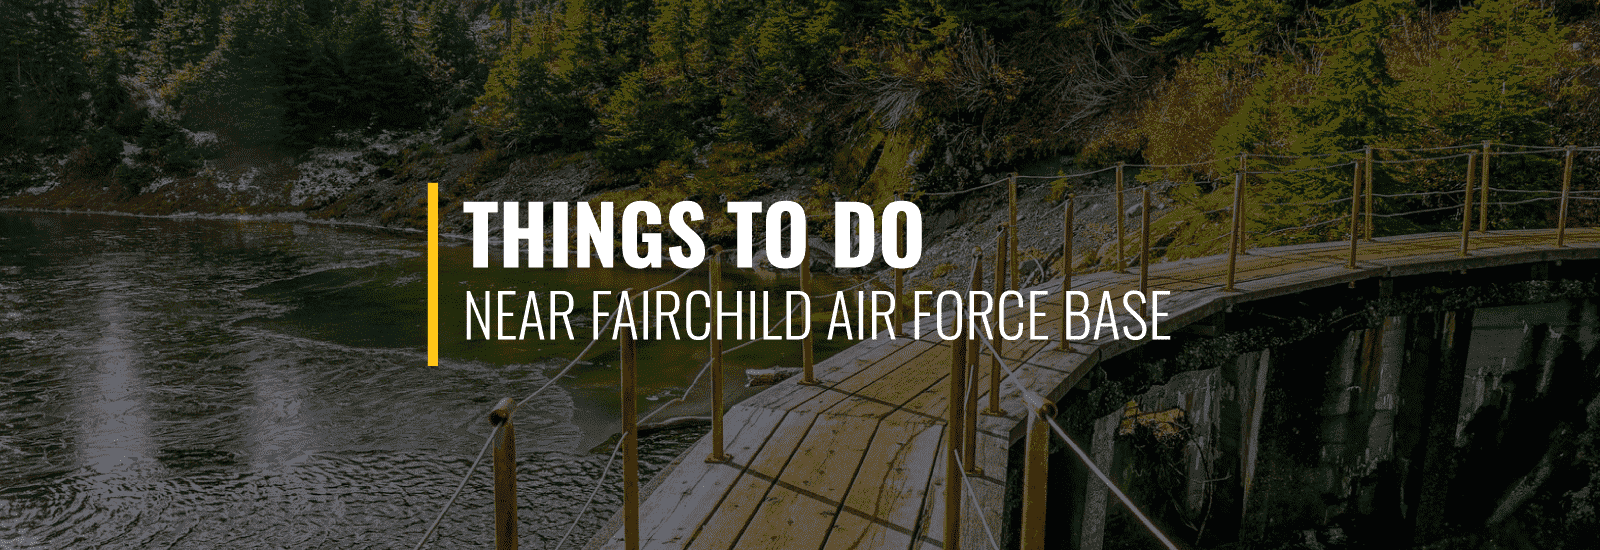 Fairchild AFB Things to Do